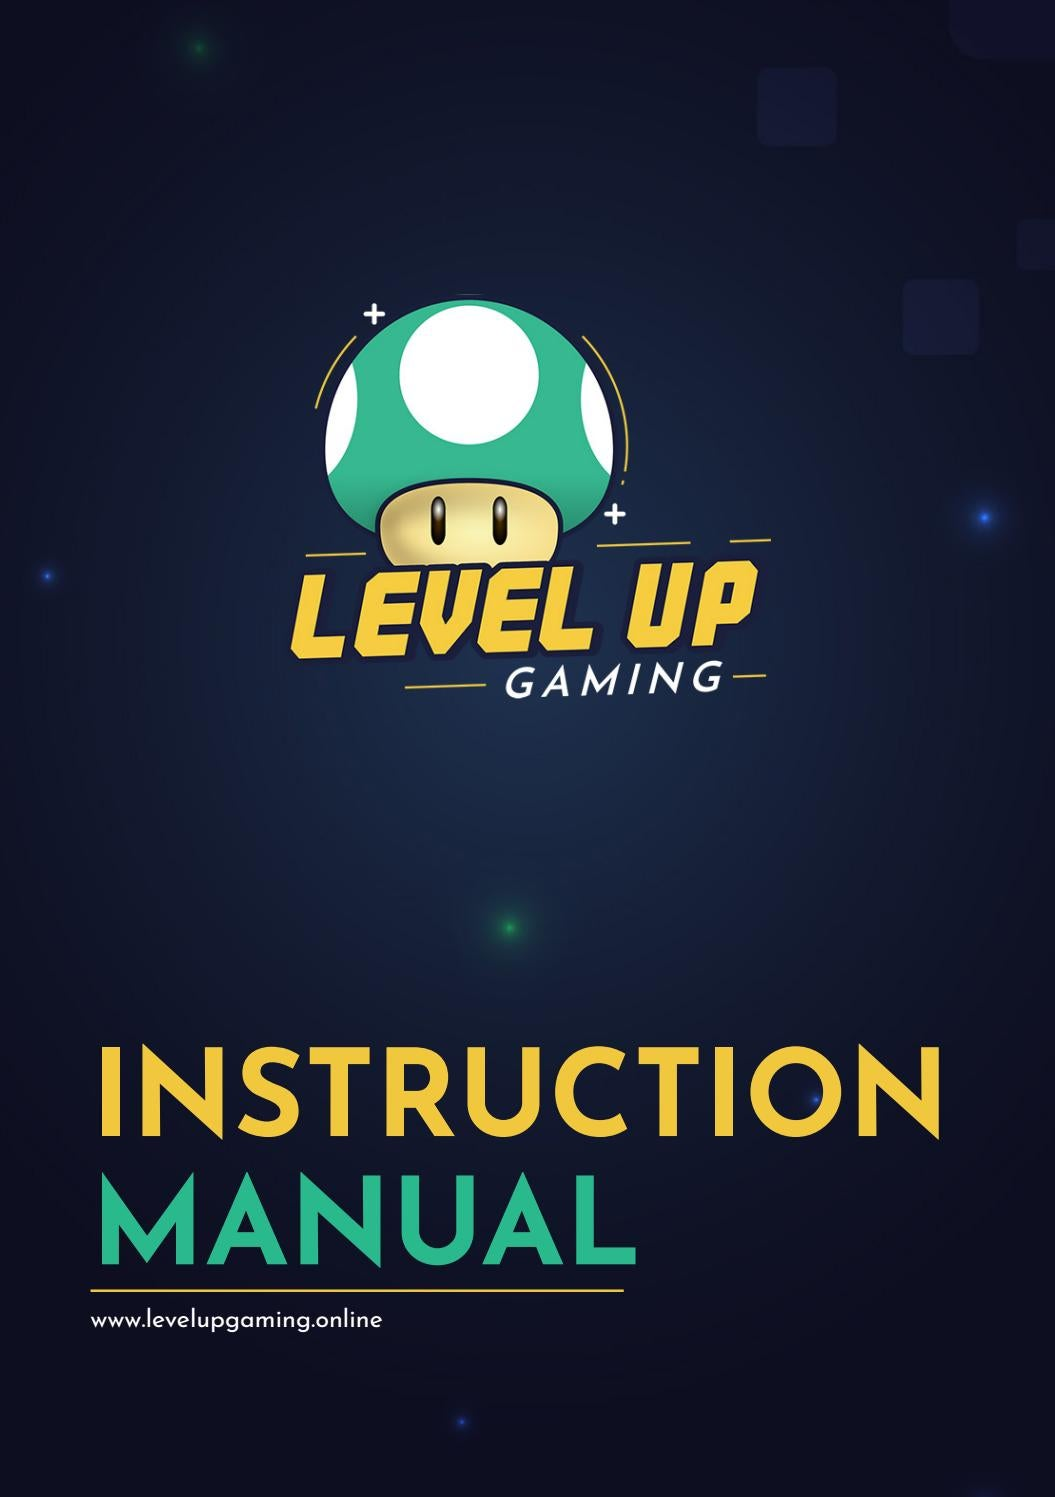 Level Up Gaming - Instruction Manual by Антон Златев - issuu